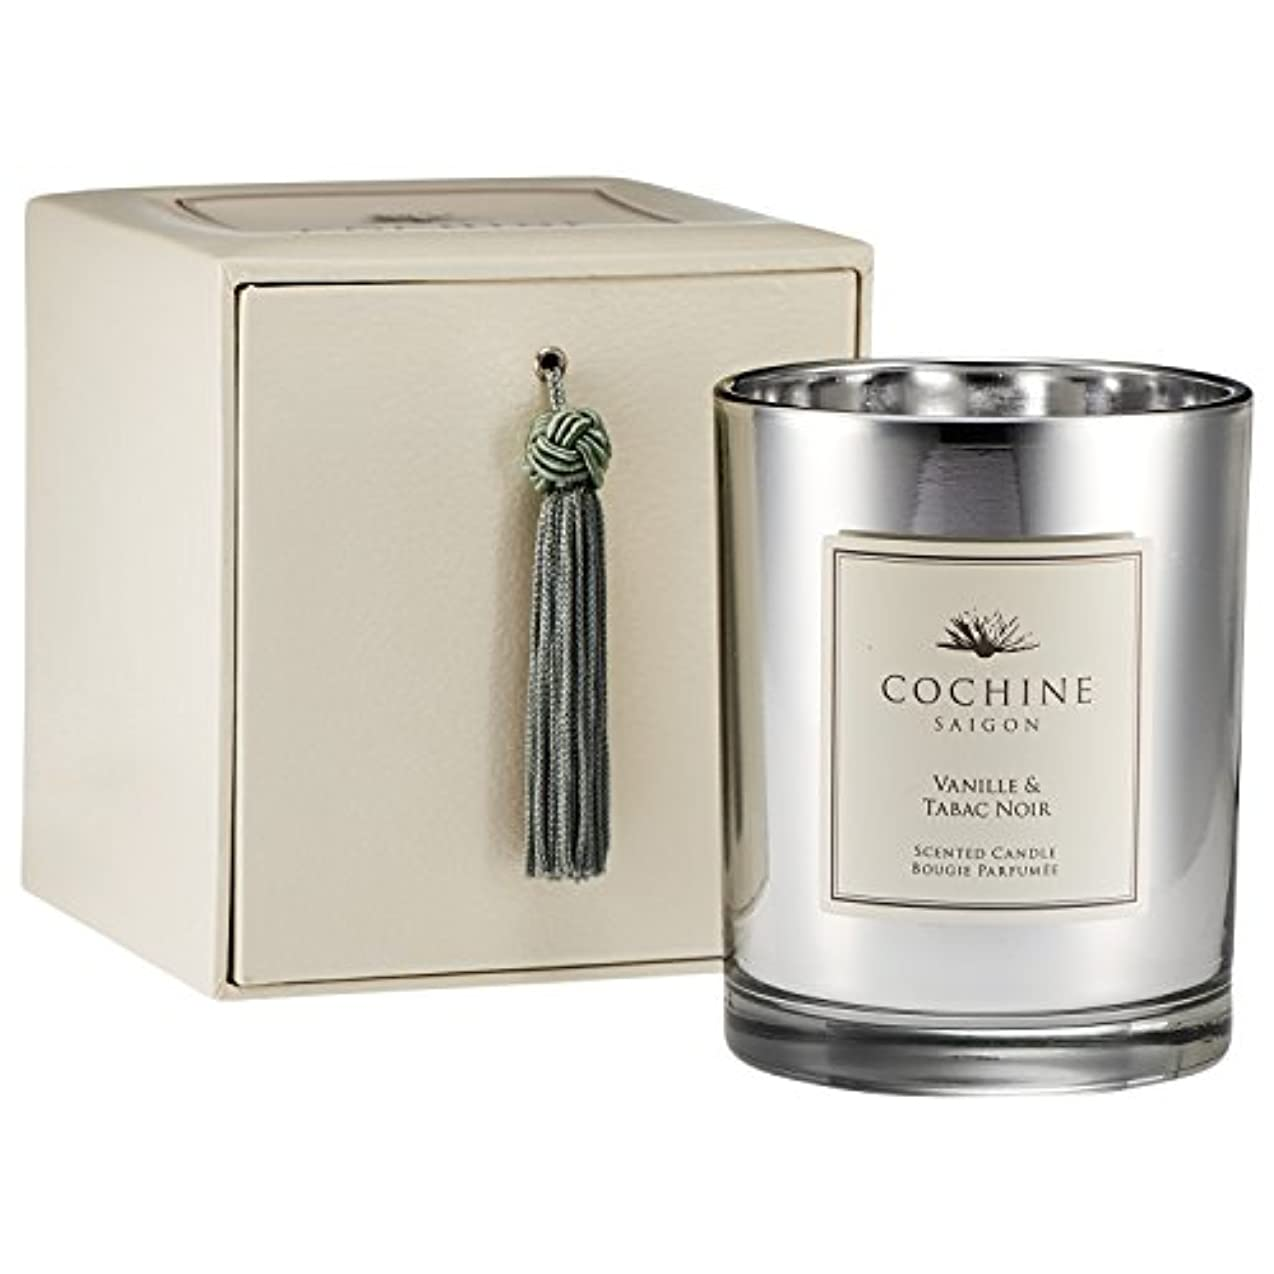 Cochine Vanille & Tabac Noir Scented Candle (Pack of 2) - Cochineヴァニラ&Tabacノワールの香りのキャンドル (Cochine) (x2) [並行輸入品]